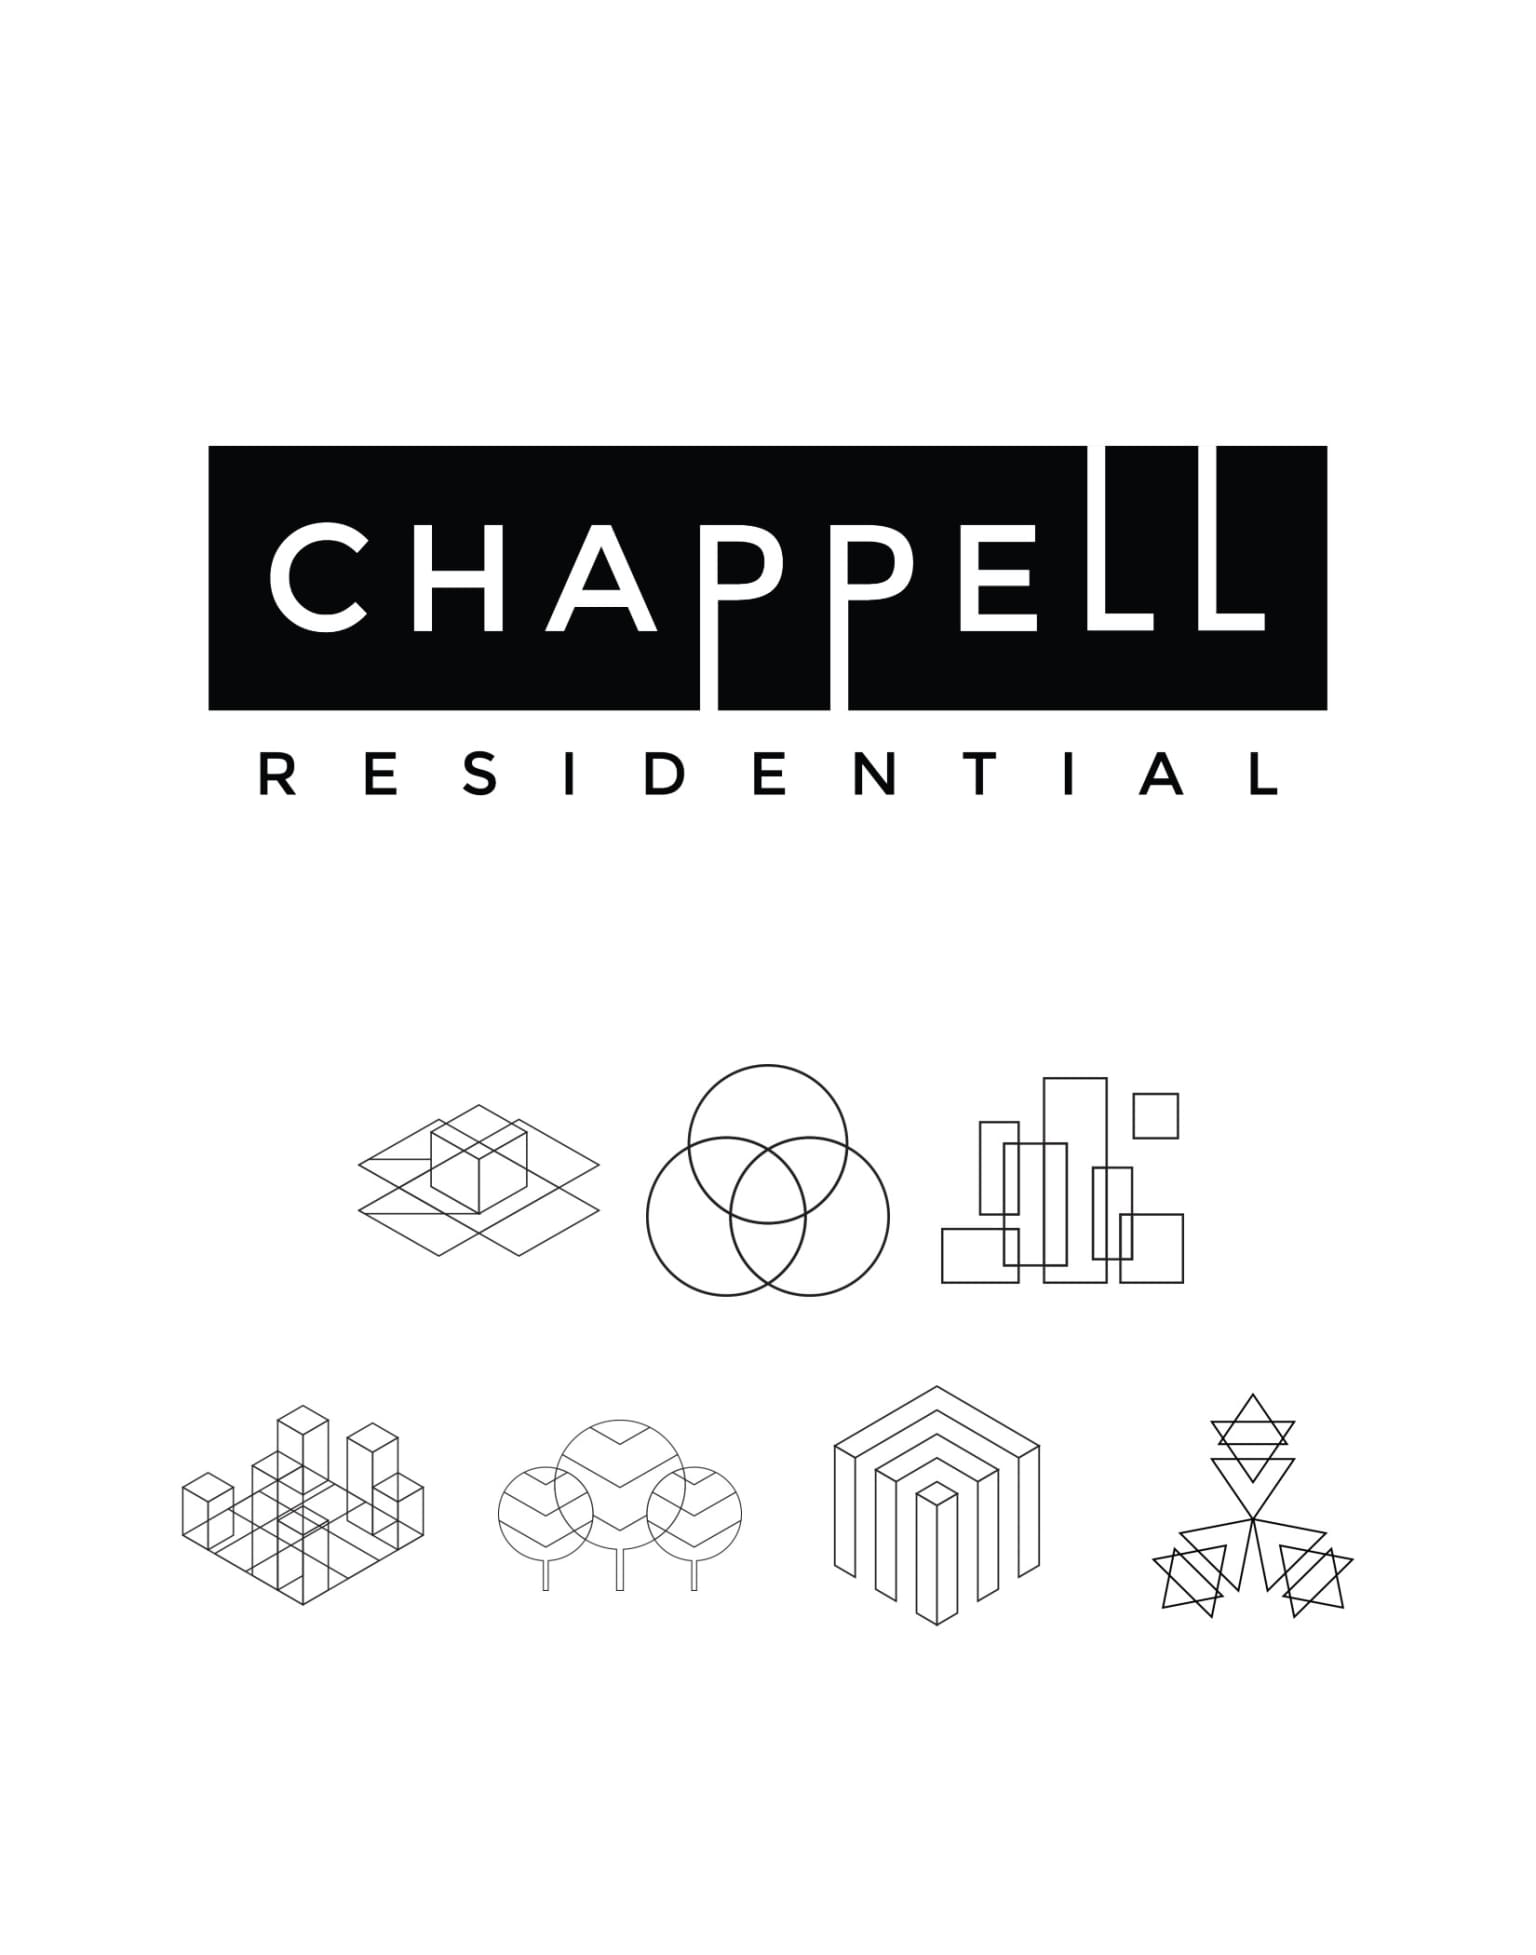 Branding for Chappell Res